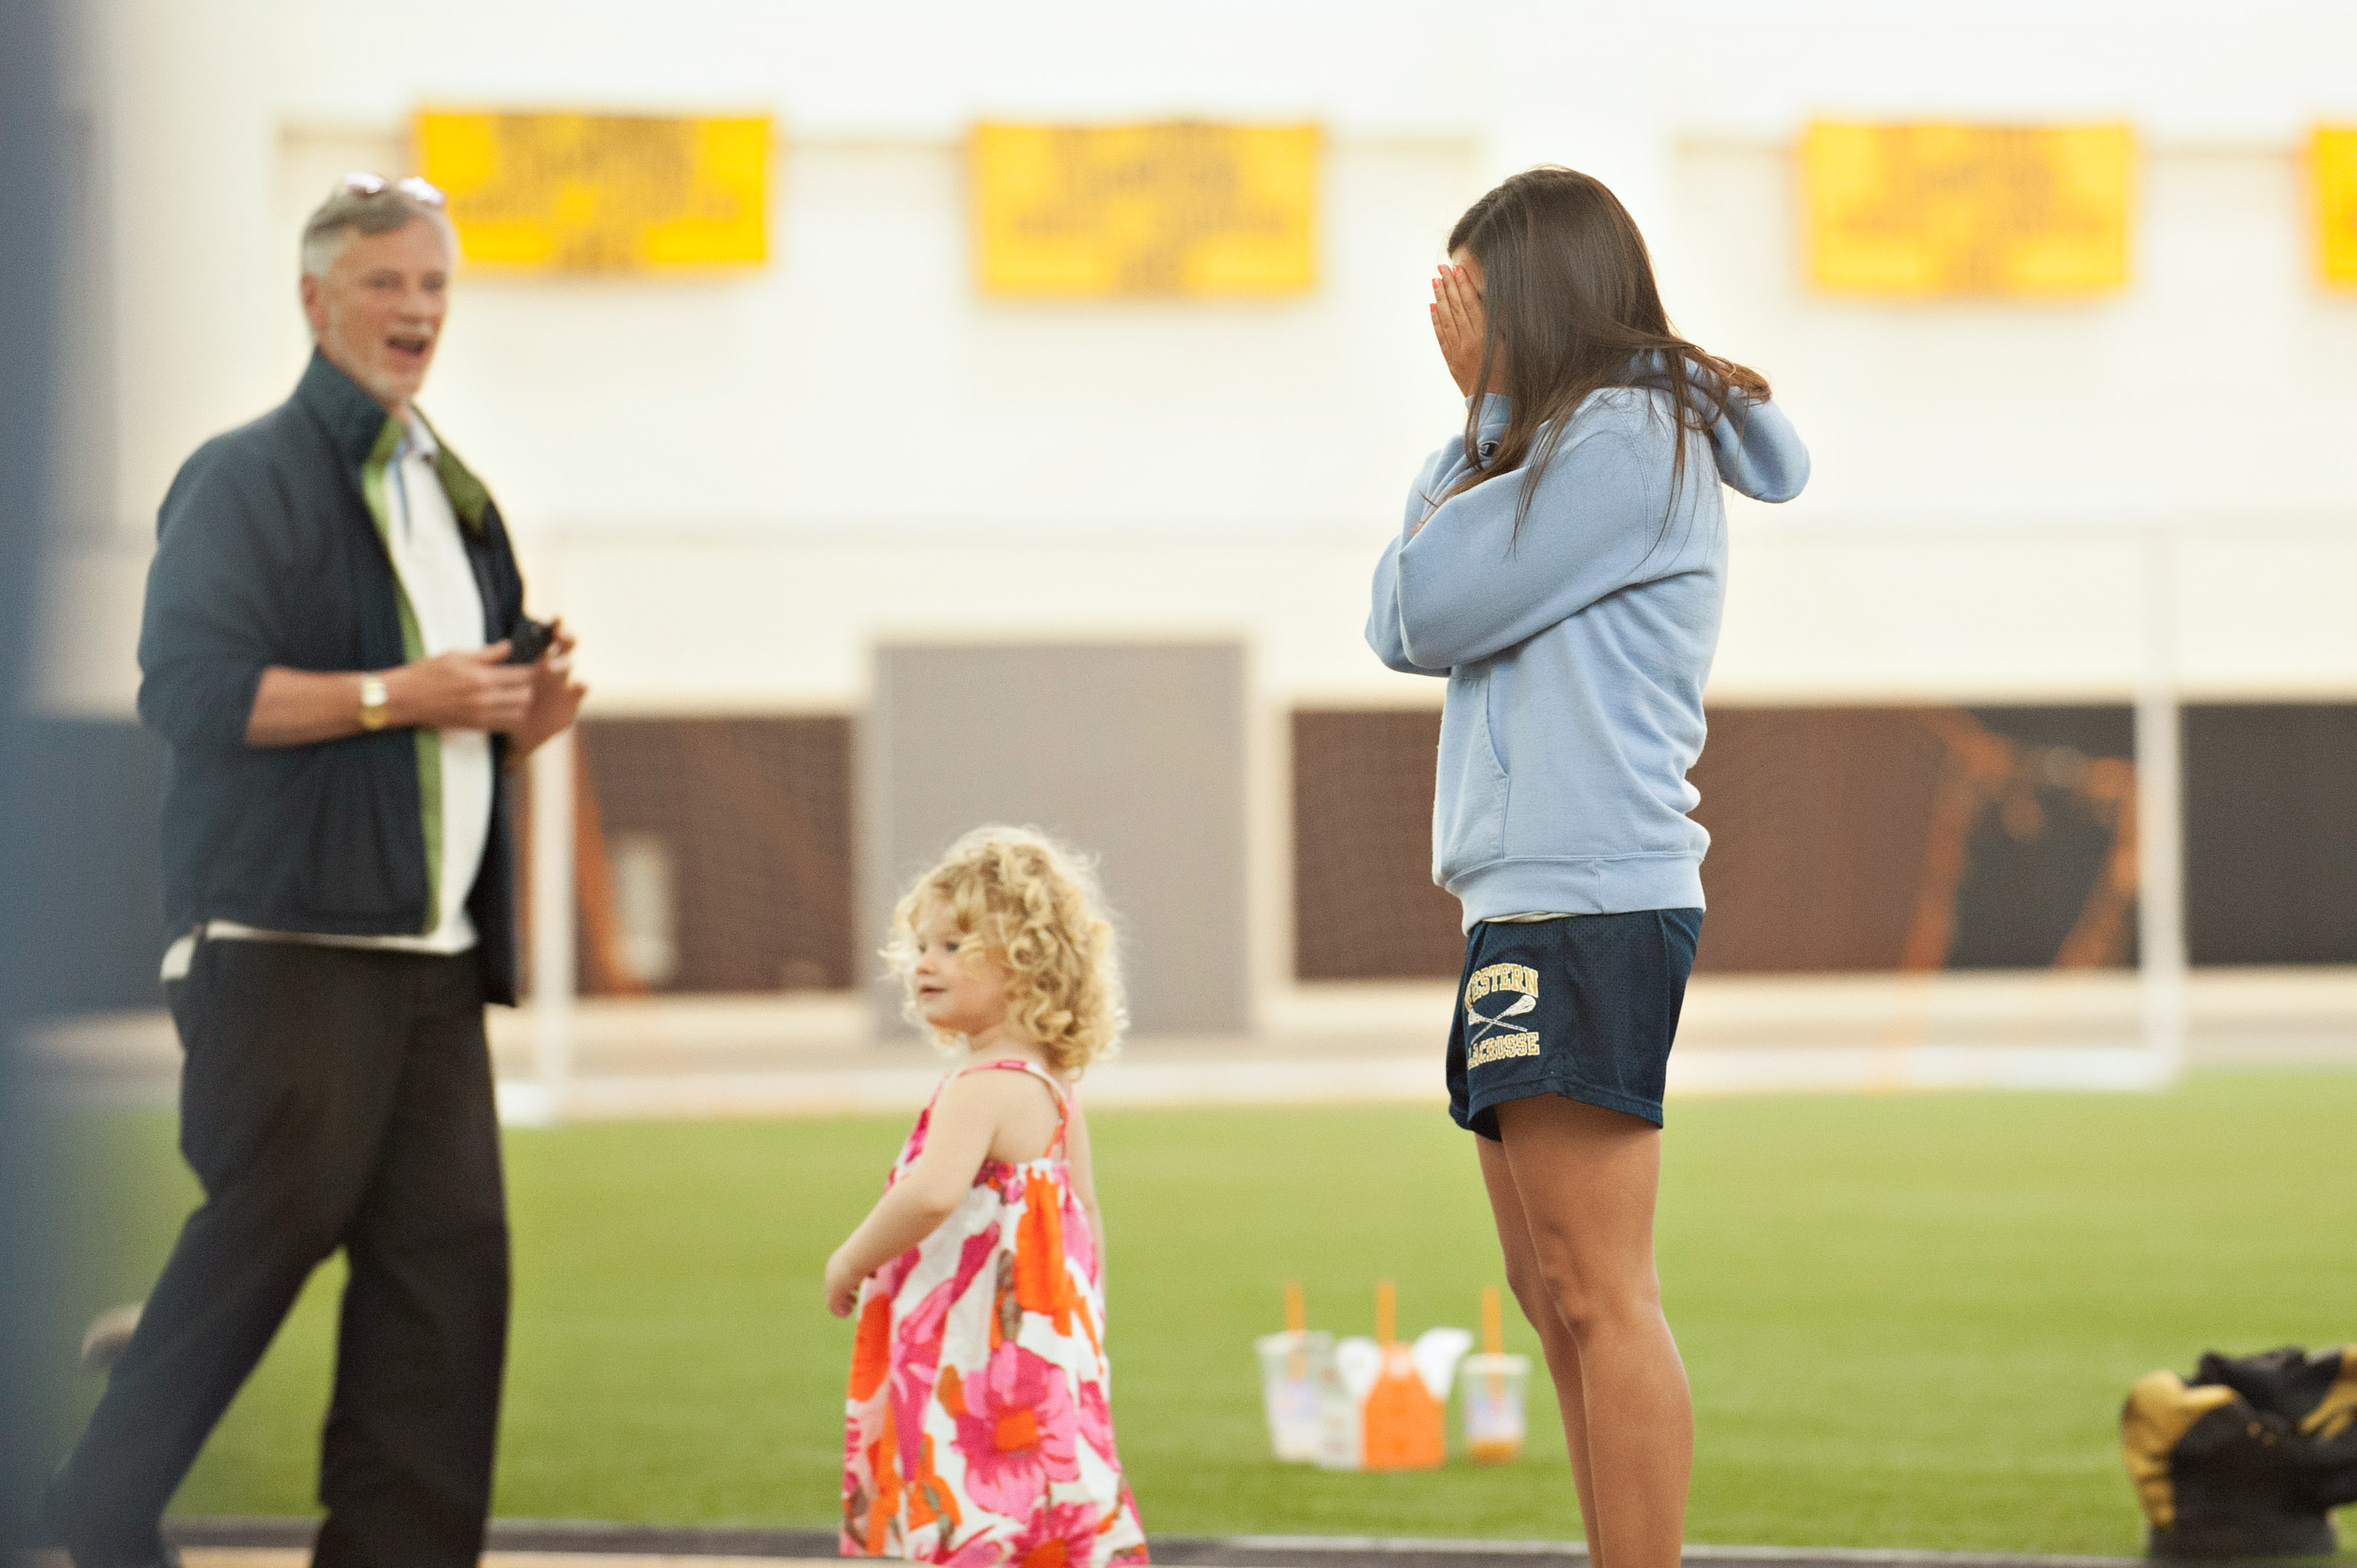 Image 6 of Marriage Proposal at Lacrosse Practice